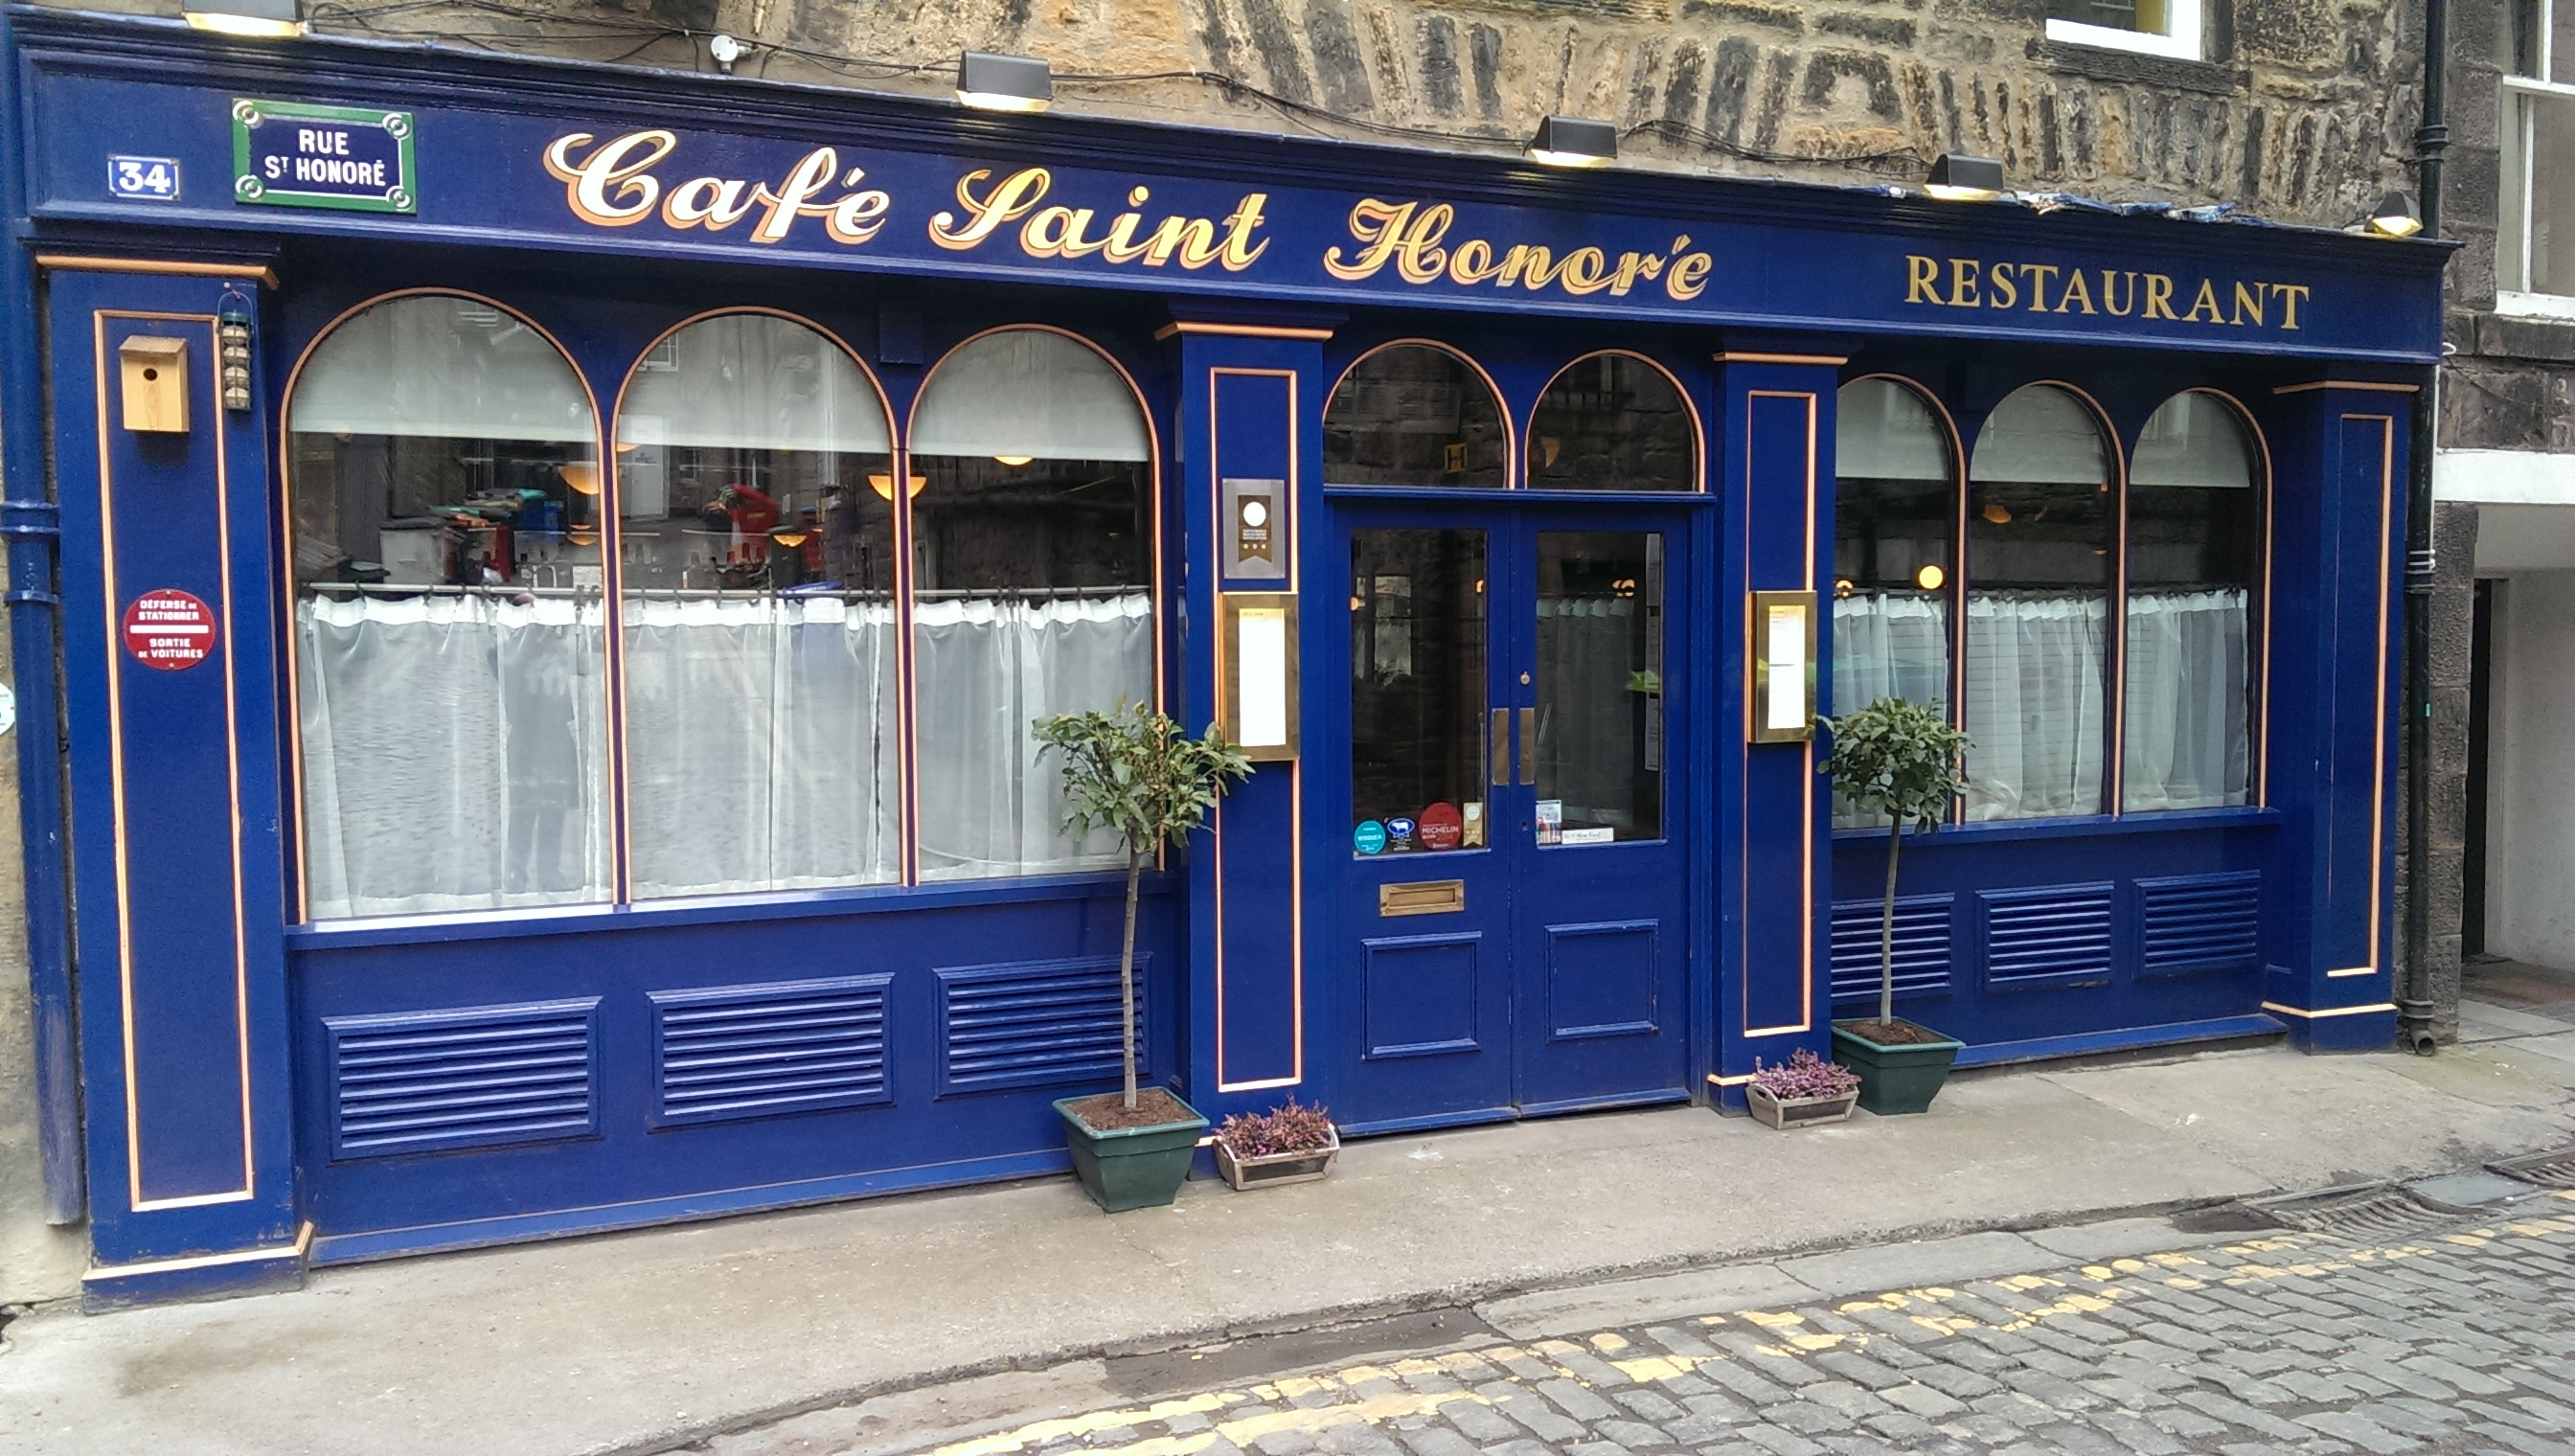 Cafe St Honoré - Edinburgh